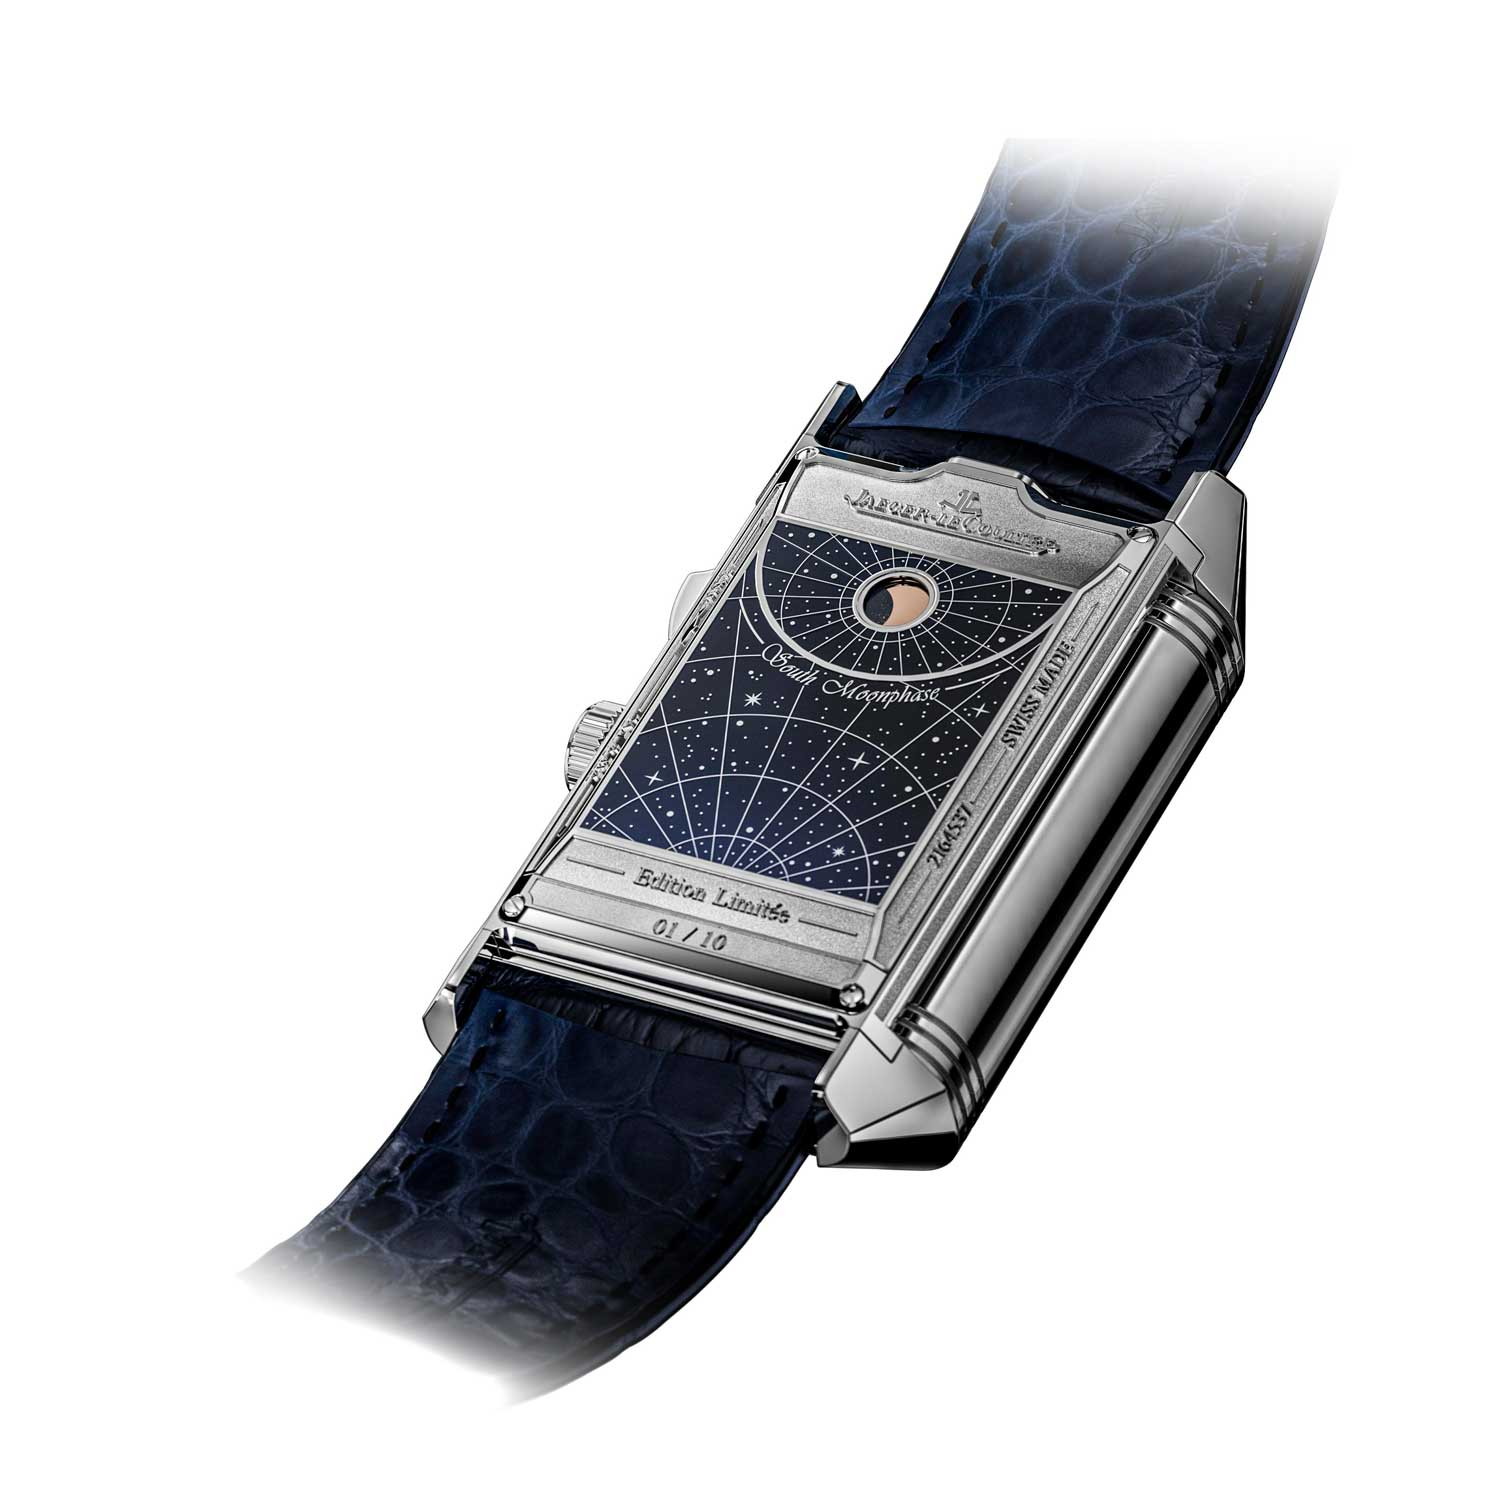 The Reverso Hybris Mechanica Quadriptyque, however, scores full marks for its selective and clear display of the 11 complications across the four faces of the watch.